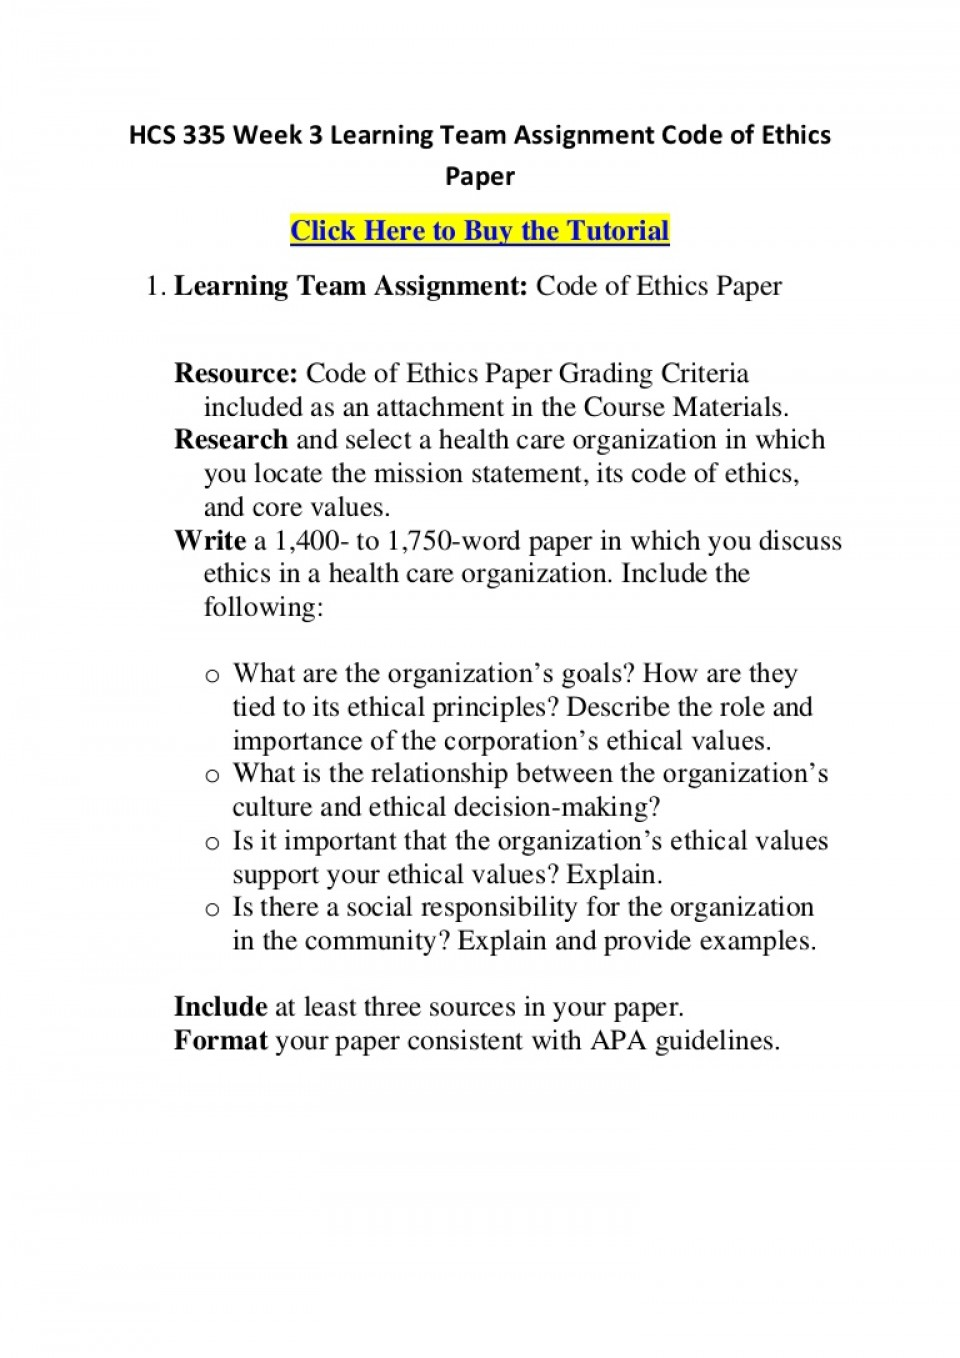 004 Hcs335week3learningteamassignmentcodeofethicspaper Phpapp01 Thumbnail Code Of Ethics Paper Essays Essay Surprising 960